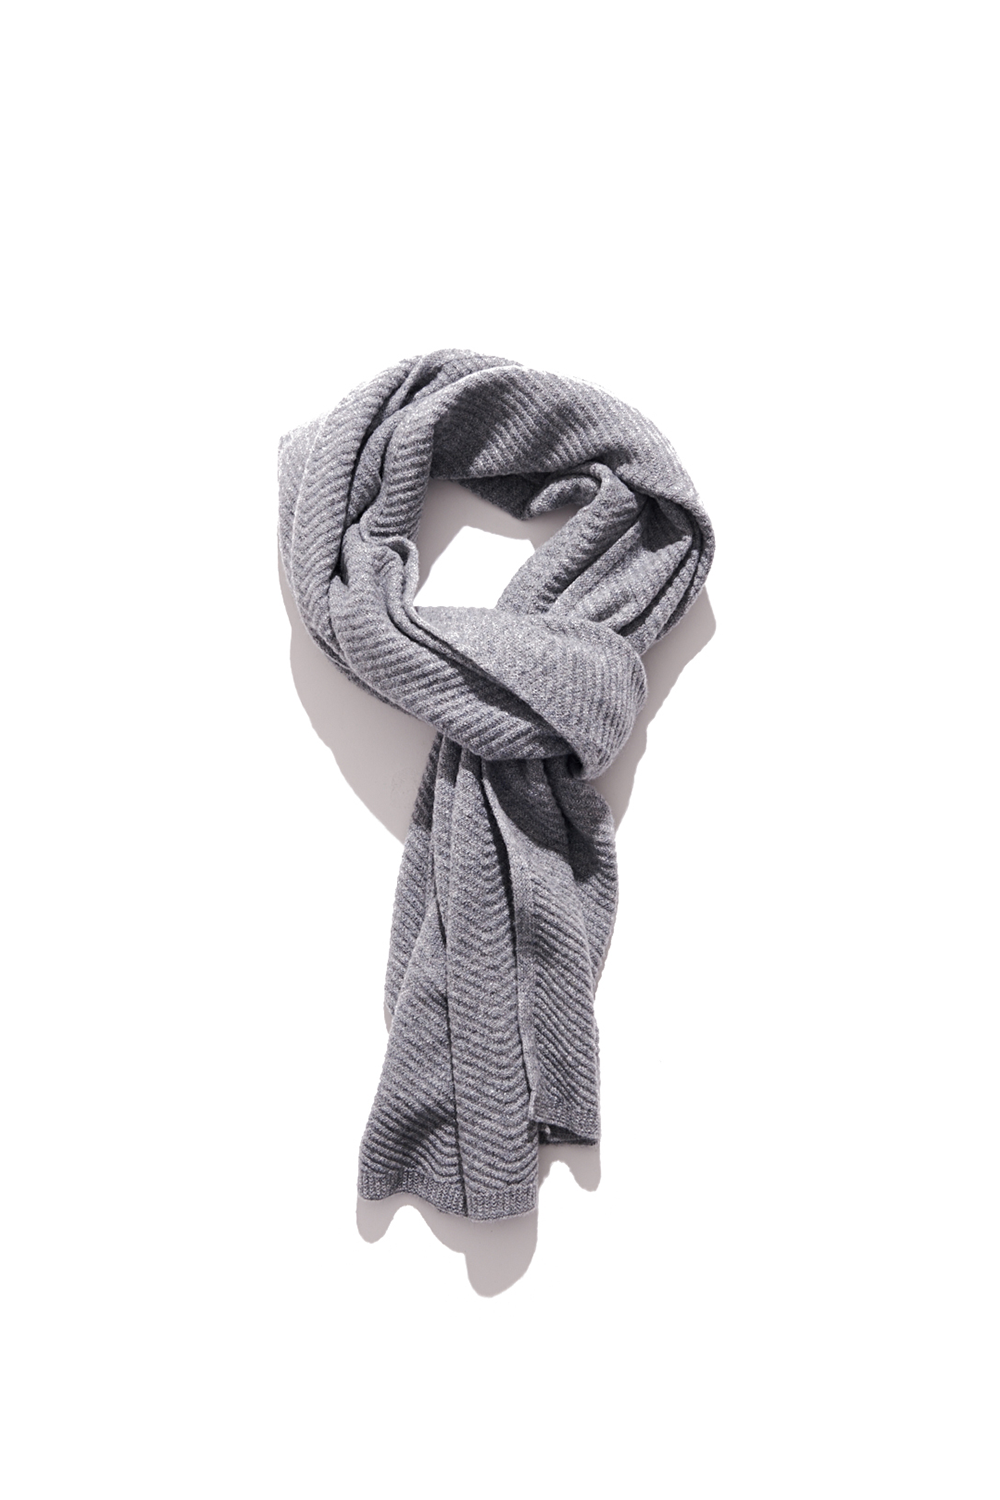 Premium pure cashmere100 whole-garment knitting shawl and scarf - Light gray (인기 상품)